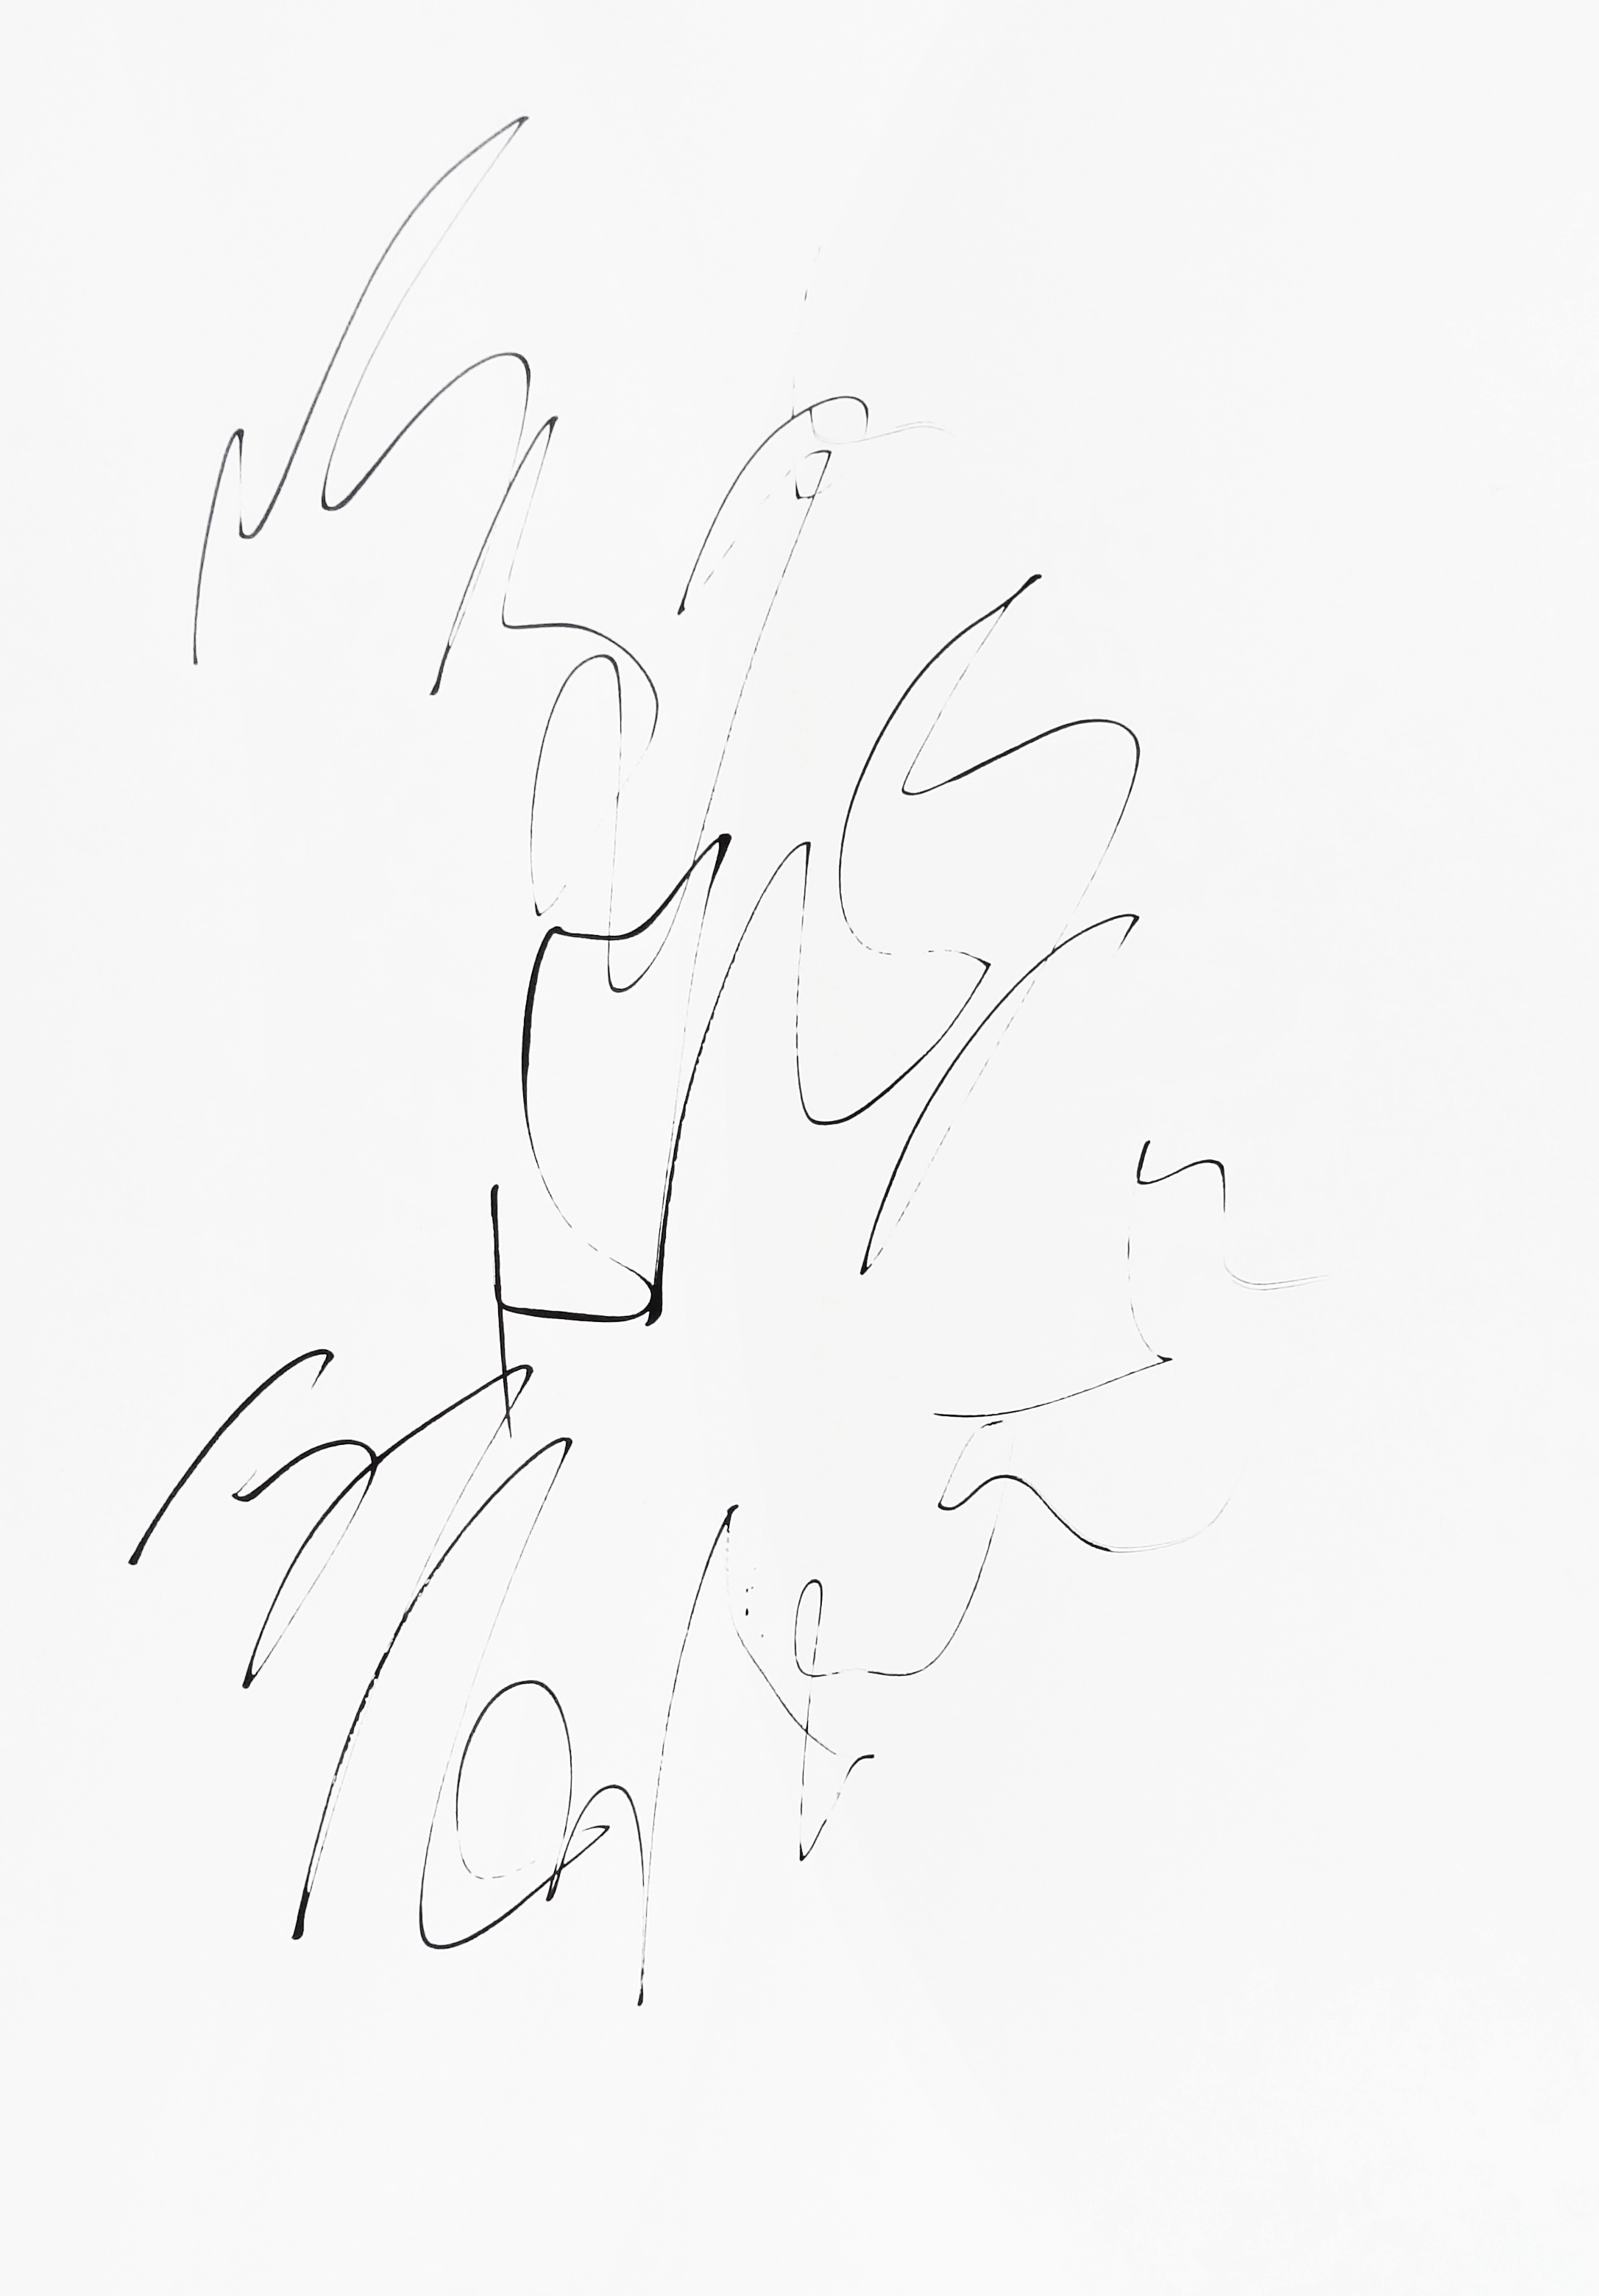 rhythm and flow studies, 2019 calligraphy ink on paper 42,0 x 29,7 cm (8-19)